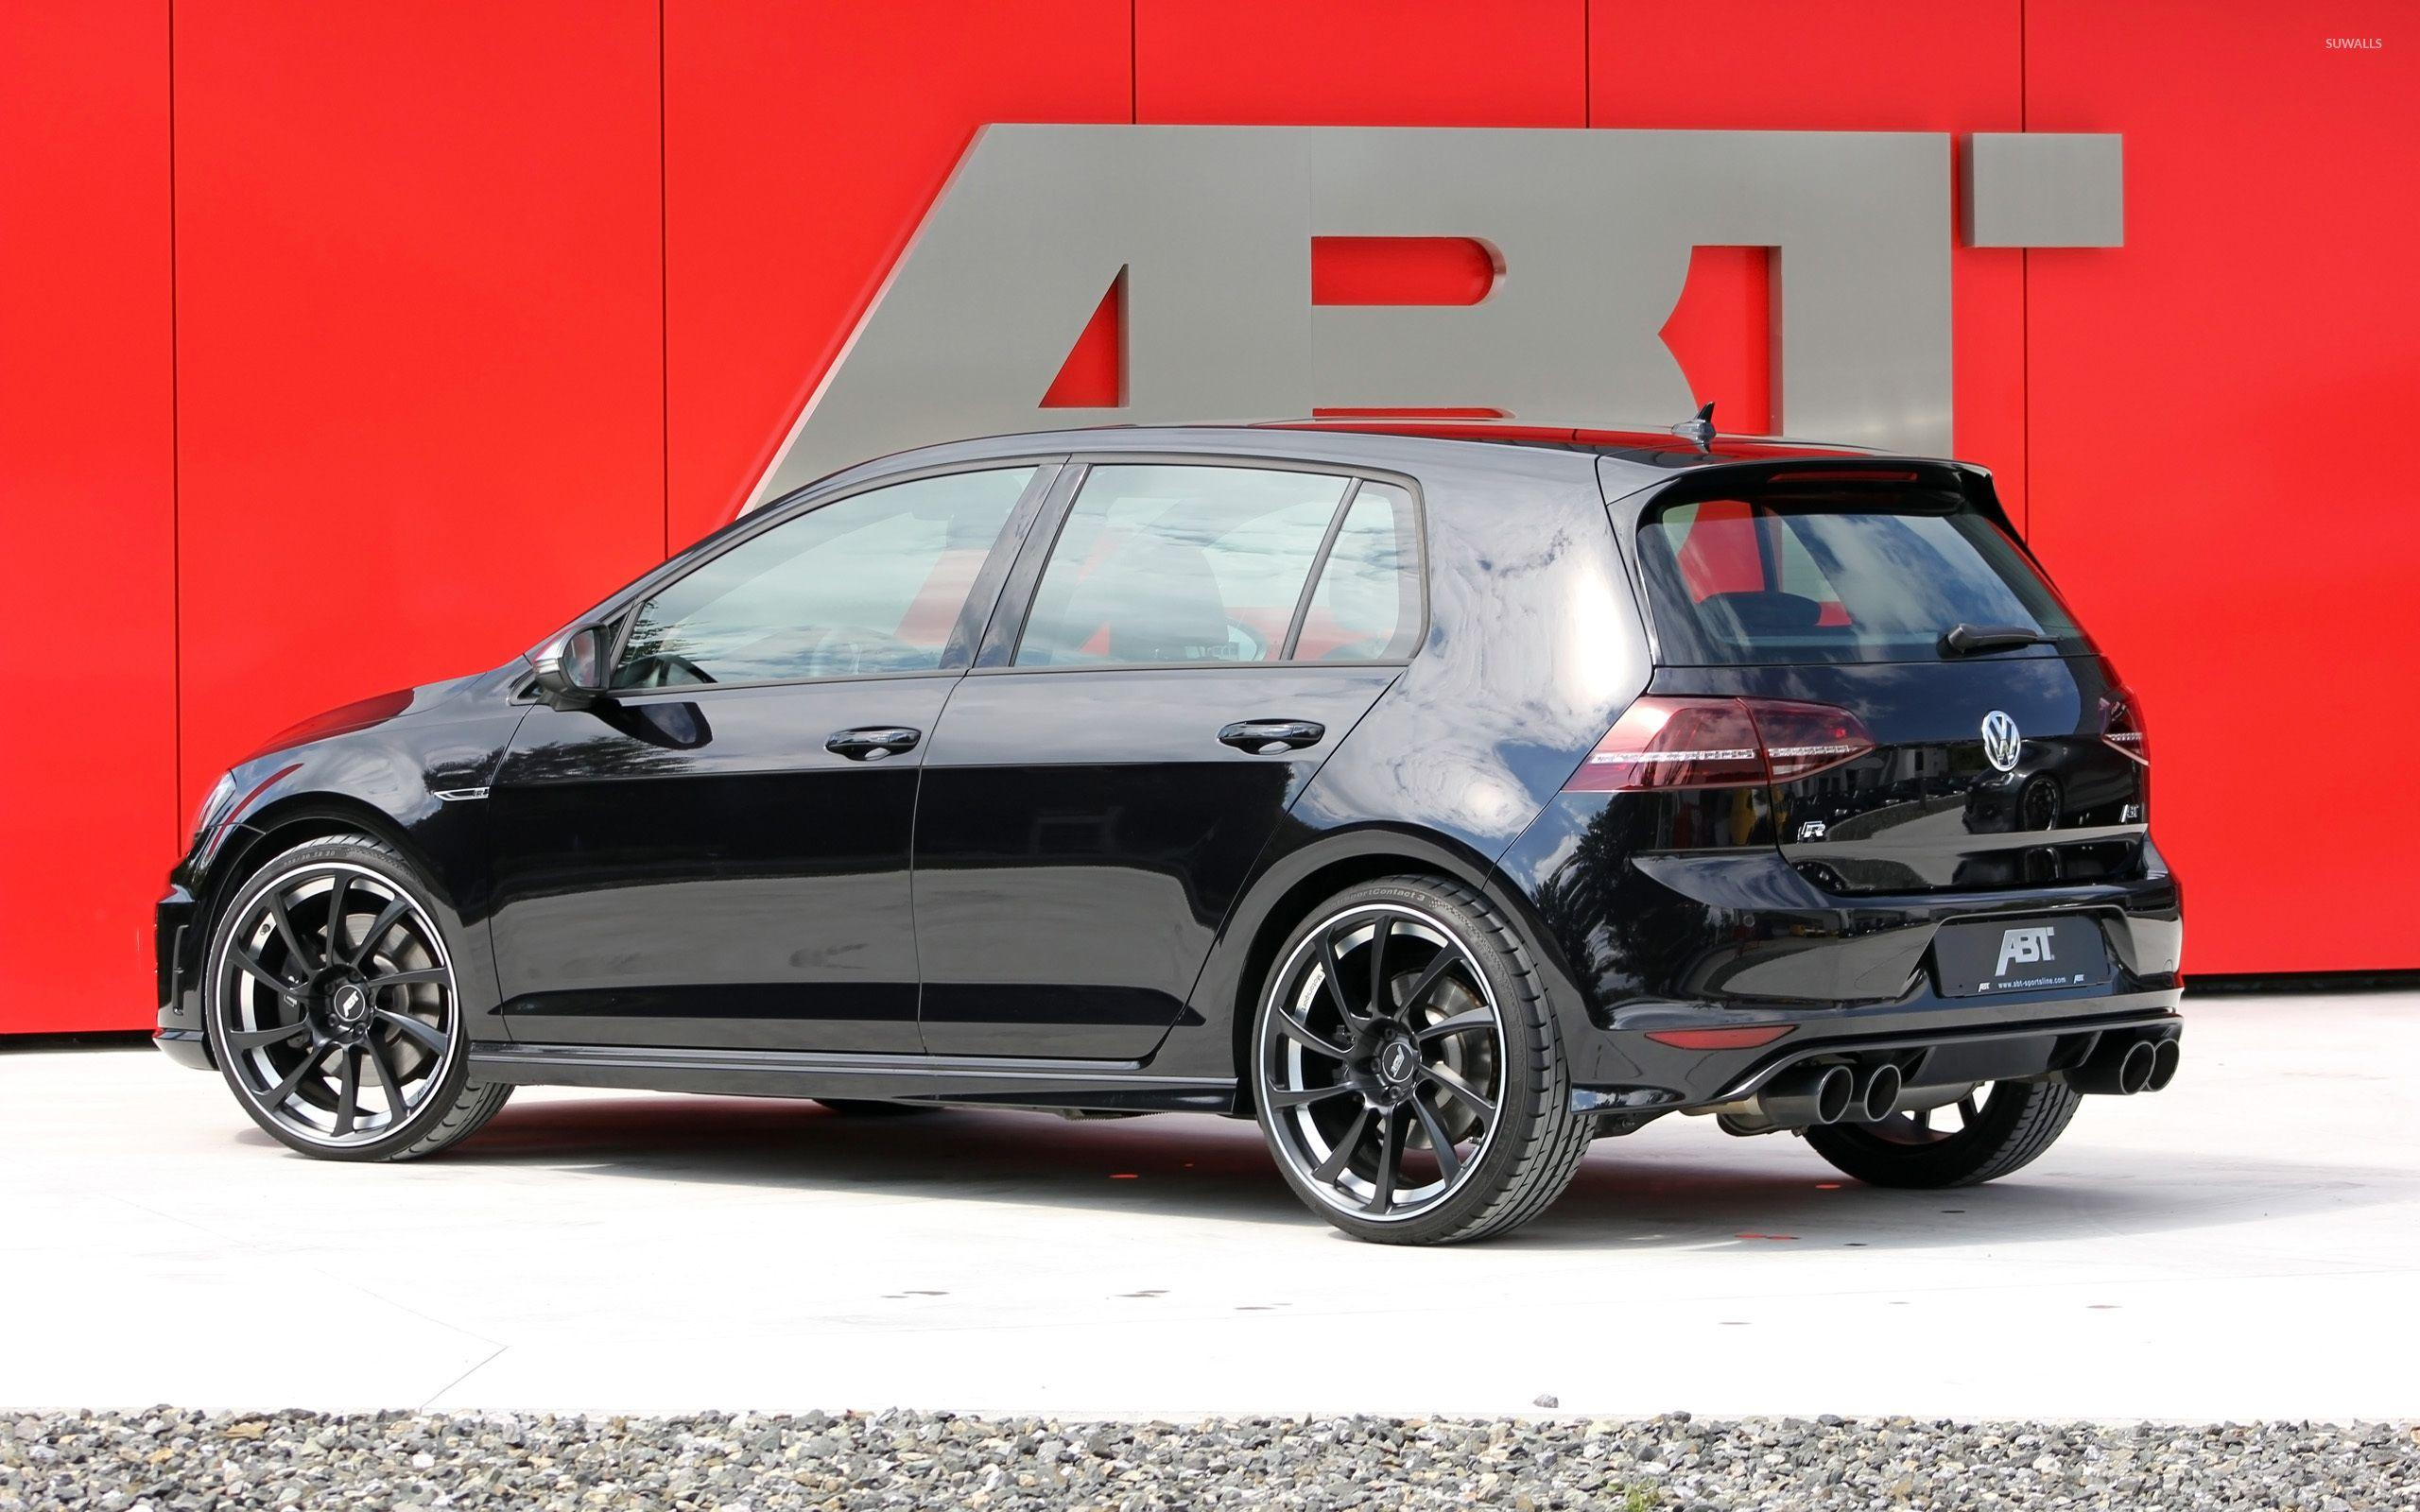 Black 2014 ABT Volkswagen Golf Mk7 back side view wallpaper - Car ...